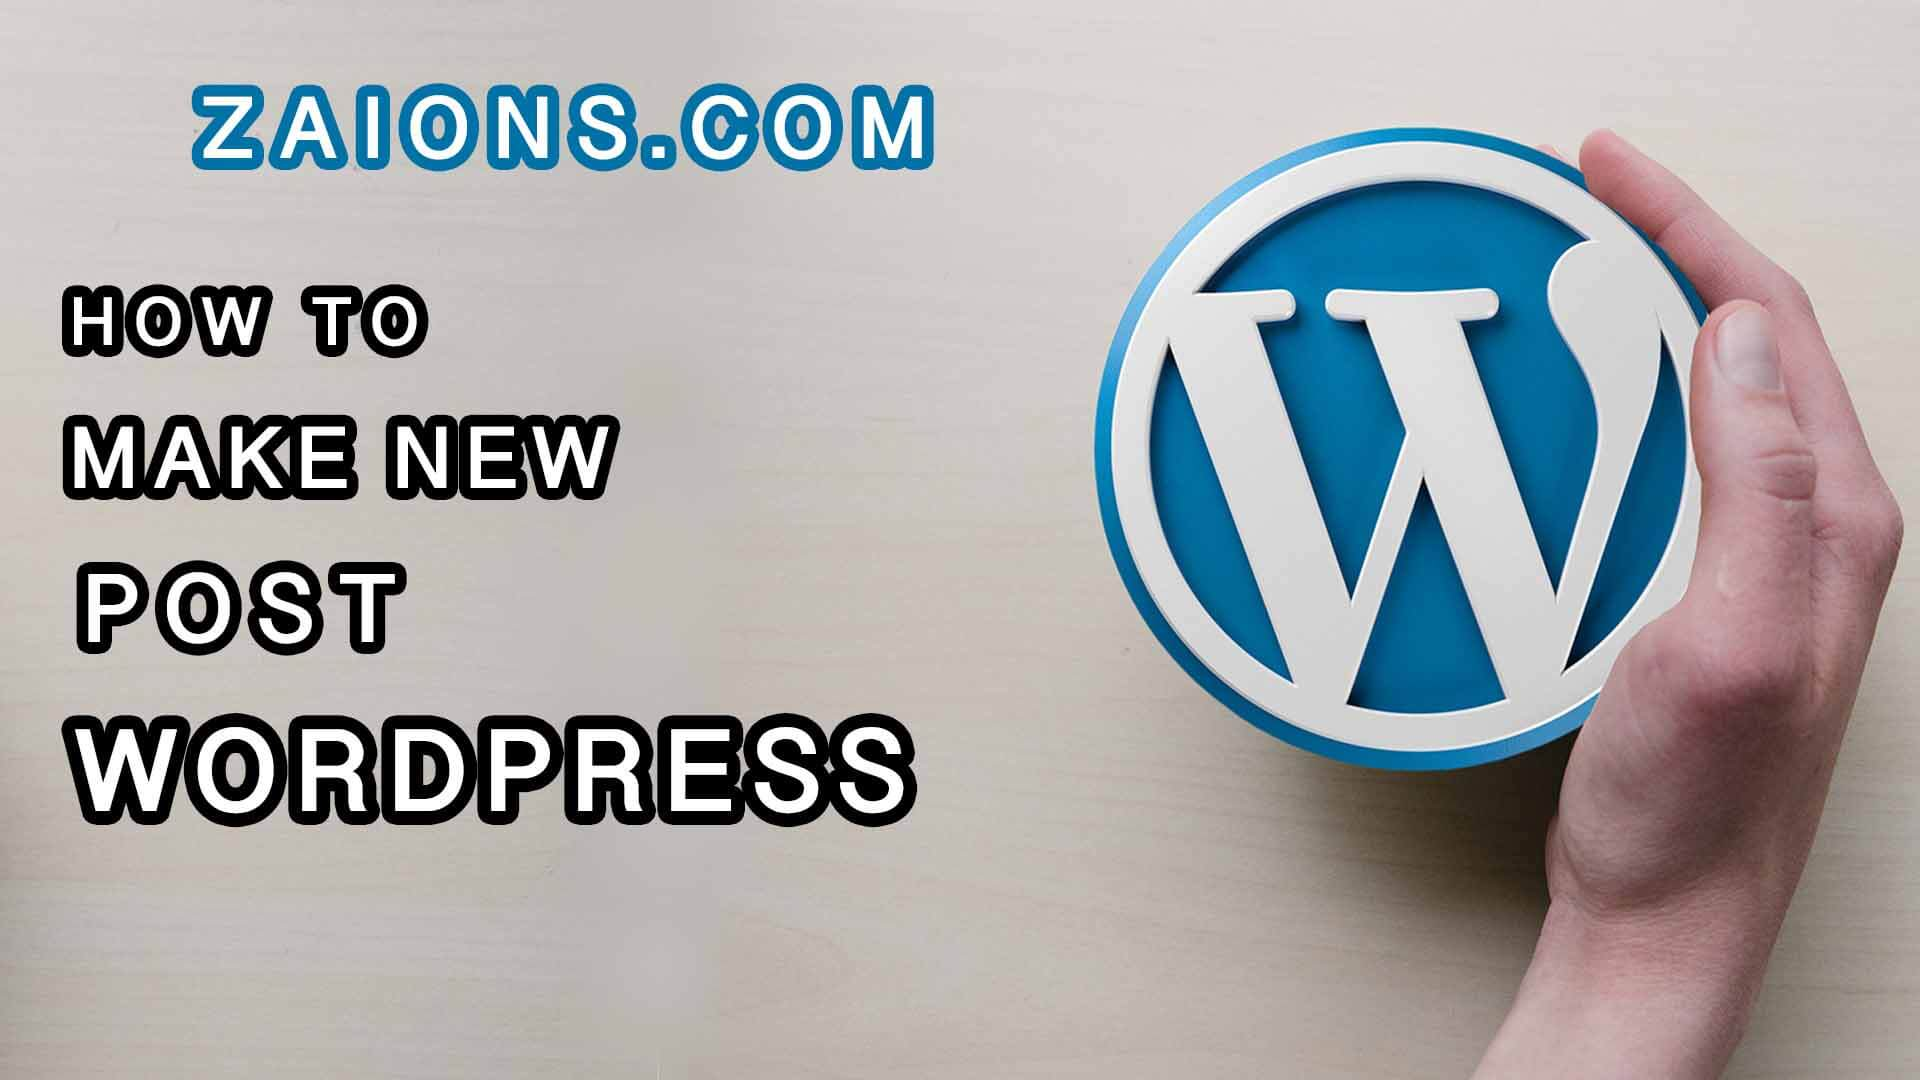 how to make a post in wordpress - zaions.com